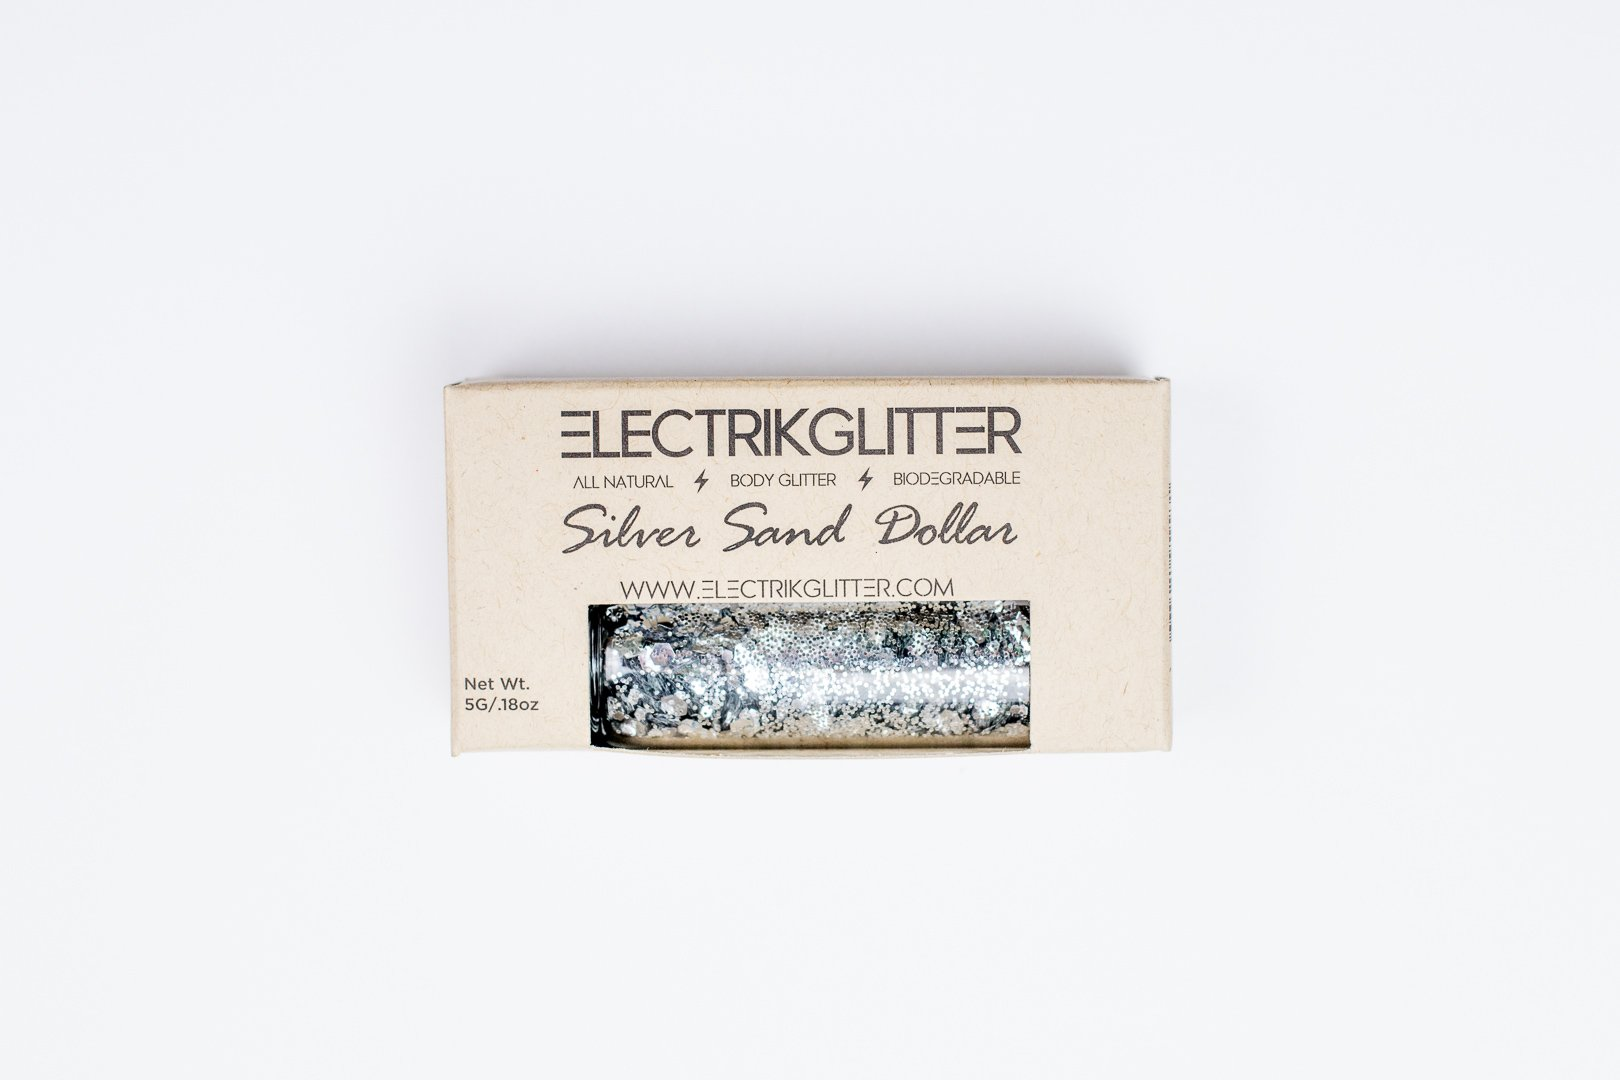 Electrik Glitter Biodegradable Body Glitter (5G) (Silver Sand Dollar) by Electrik Glitter (Image #5)